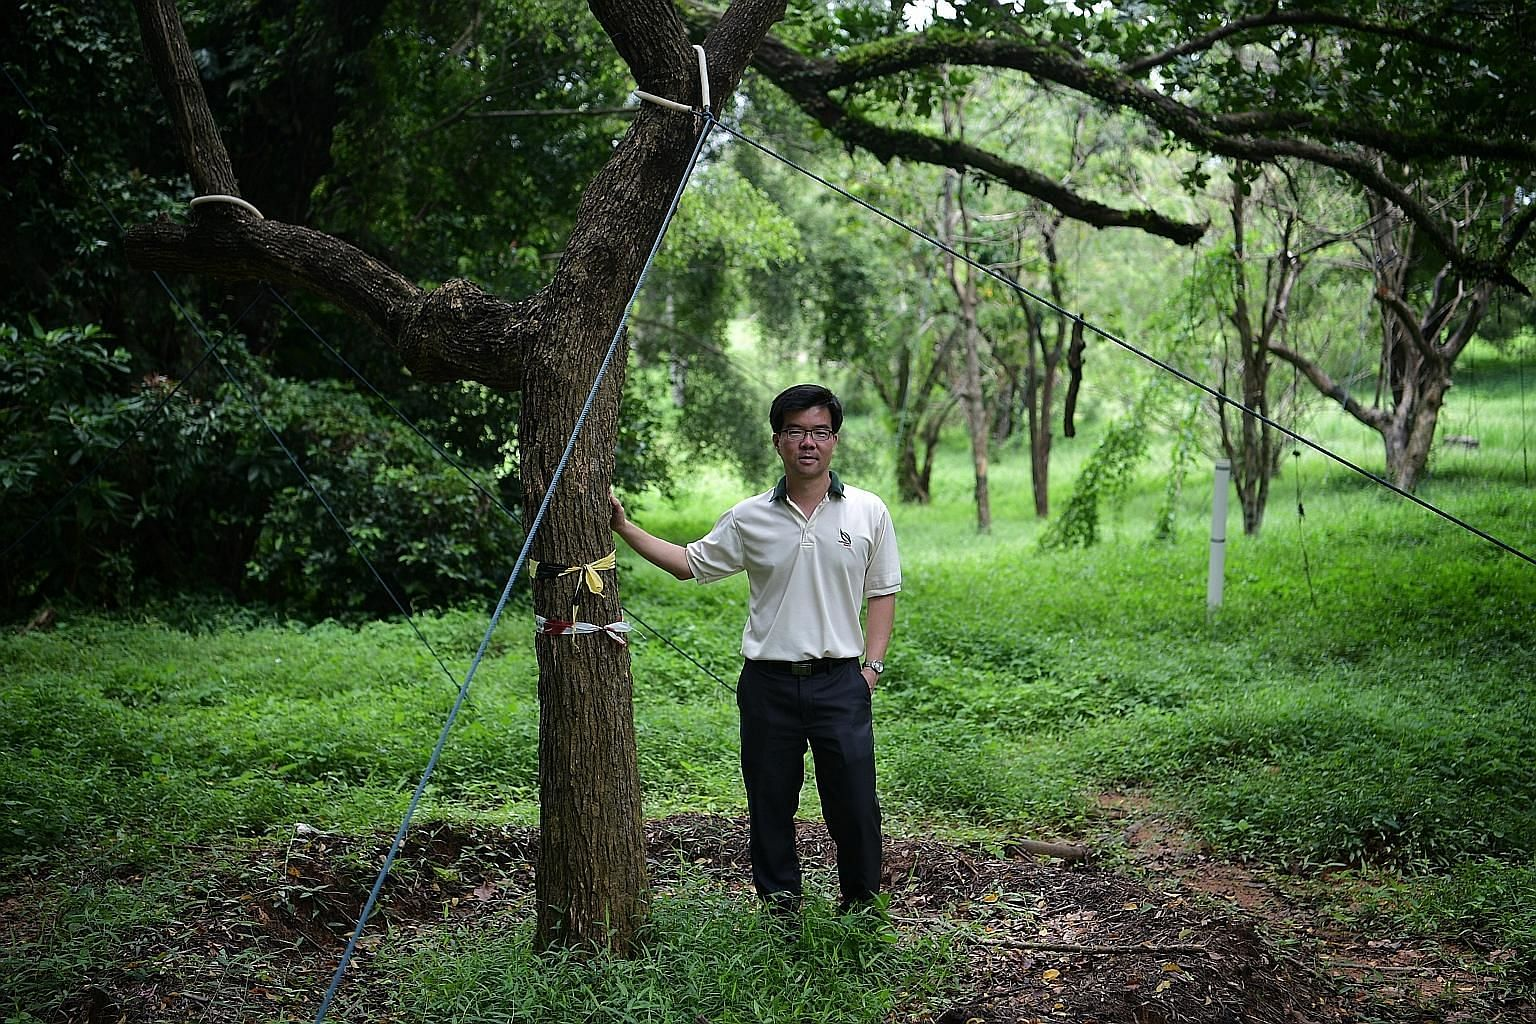 NParks streetscape group director Oh Cheow Sheng with a transplanted mango tree at the Bidadari holding area. While most of the trees to be removed will end up as material for mulching, biofuel and recycling, a small proportion will be salvaged. Thes